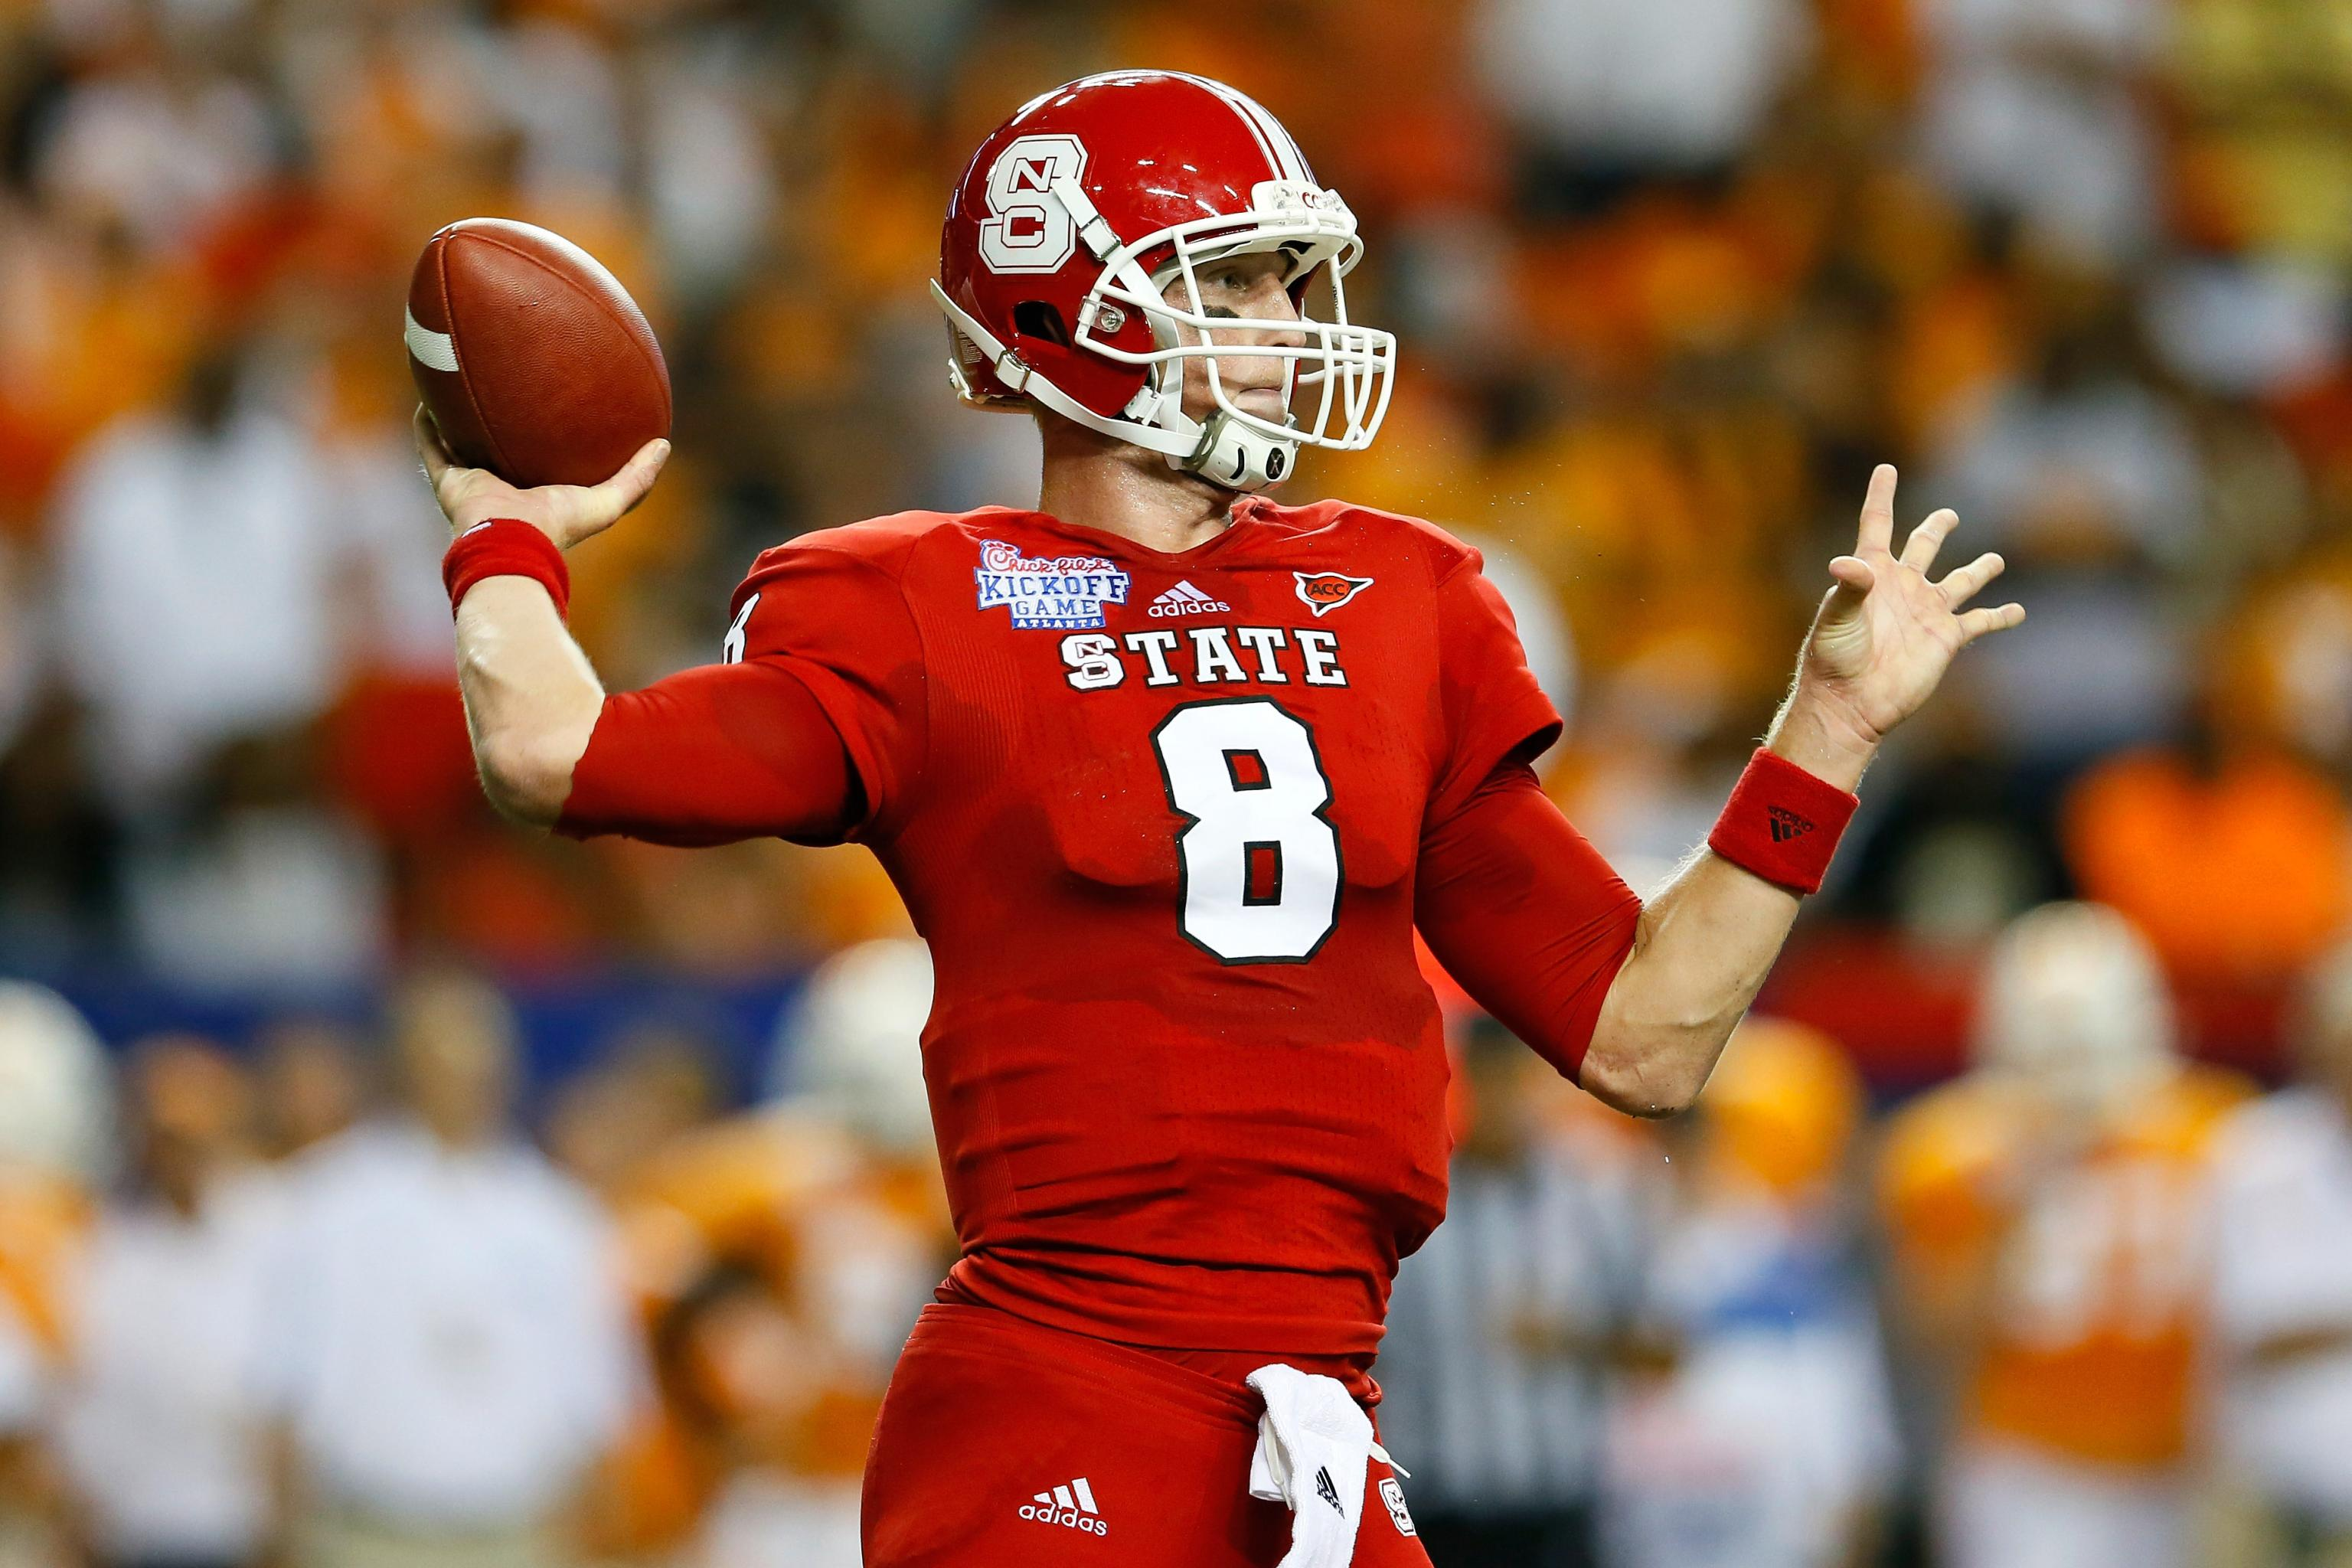 Nc state vs citadel betting line hattongames betting sites